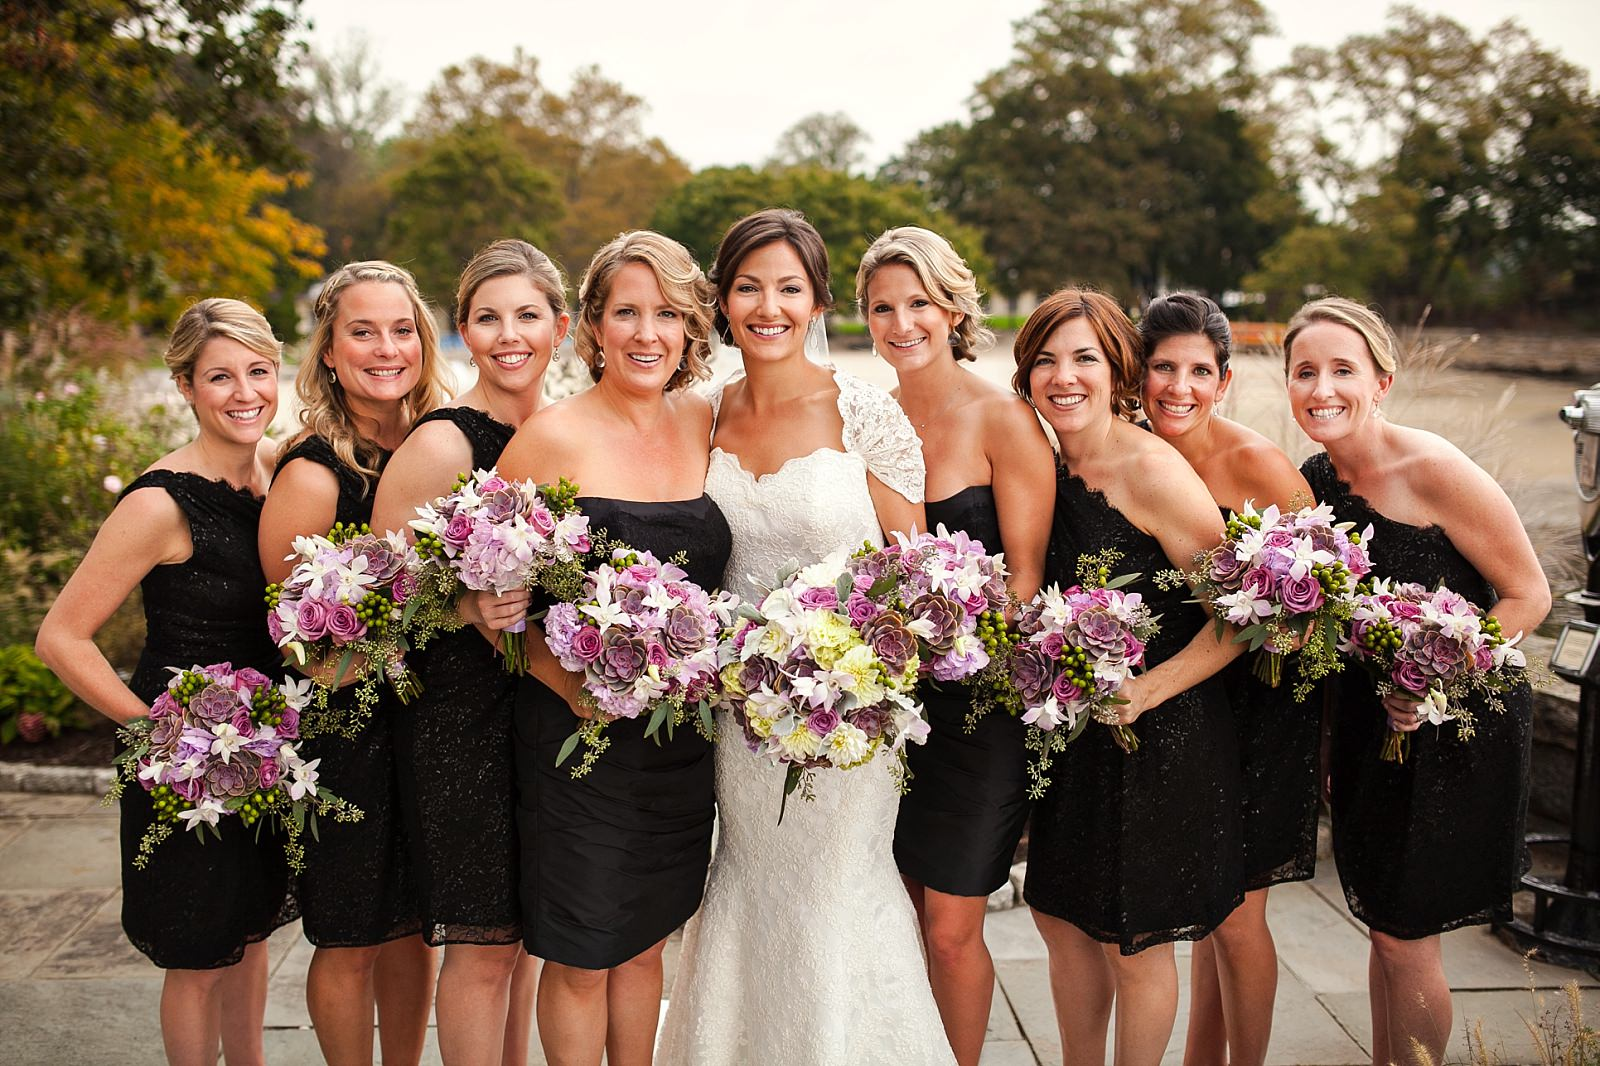 NY_Wedding_Photographer_KaJo_17.jpg